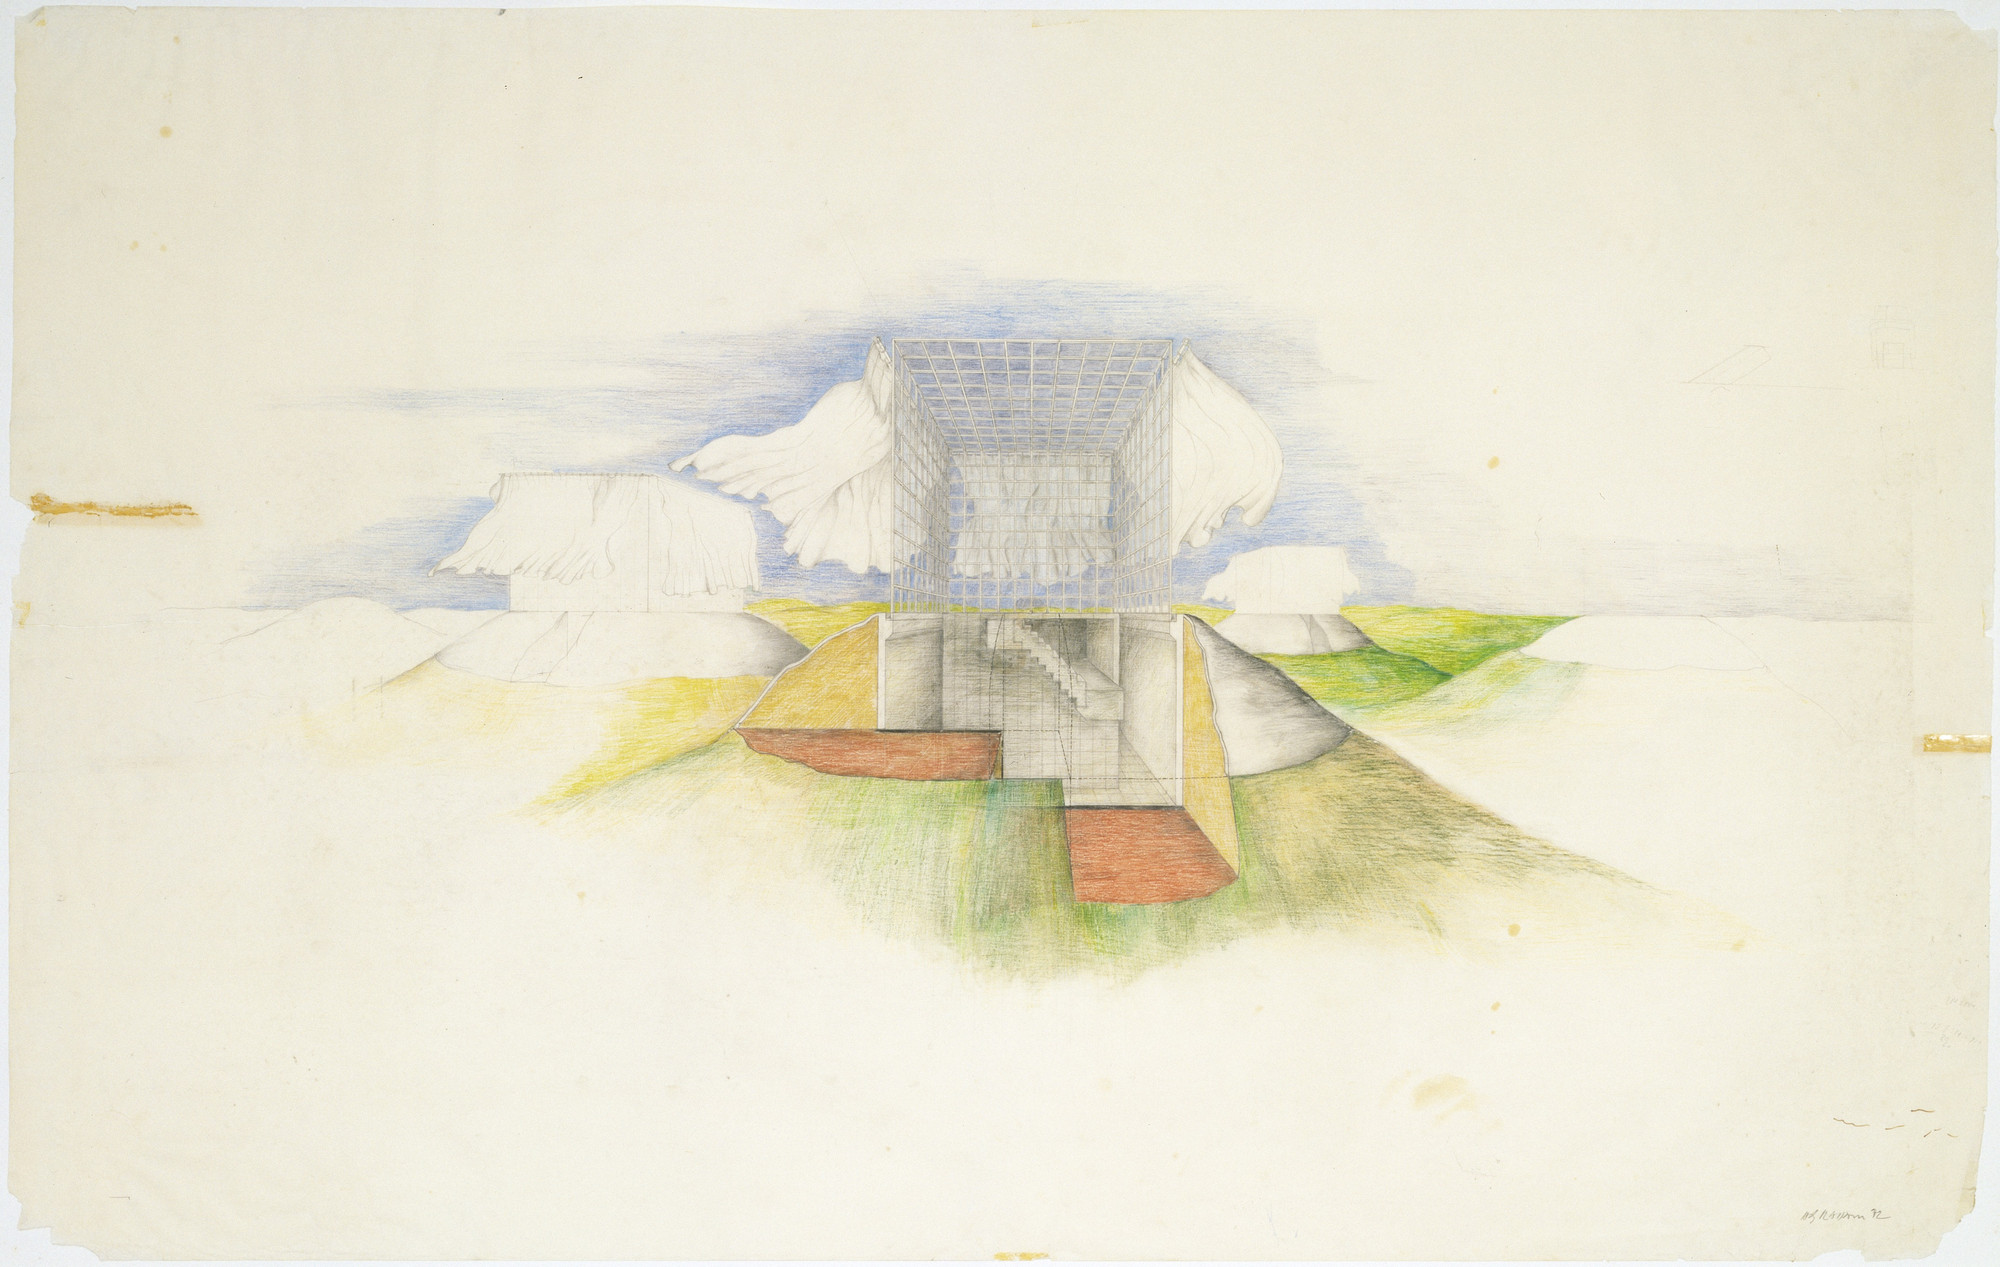 Raimund Abraham. The House with Curtains Project, Perspective. 1972